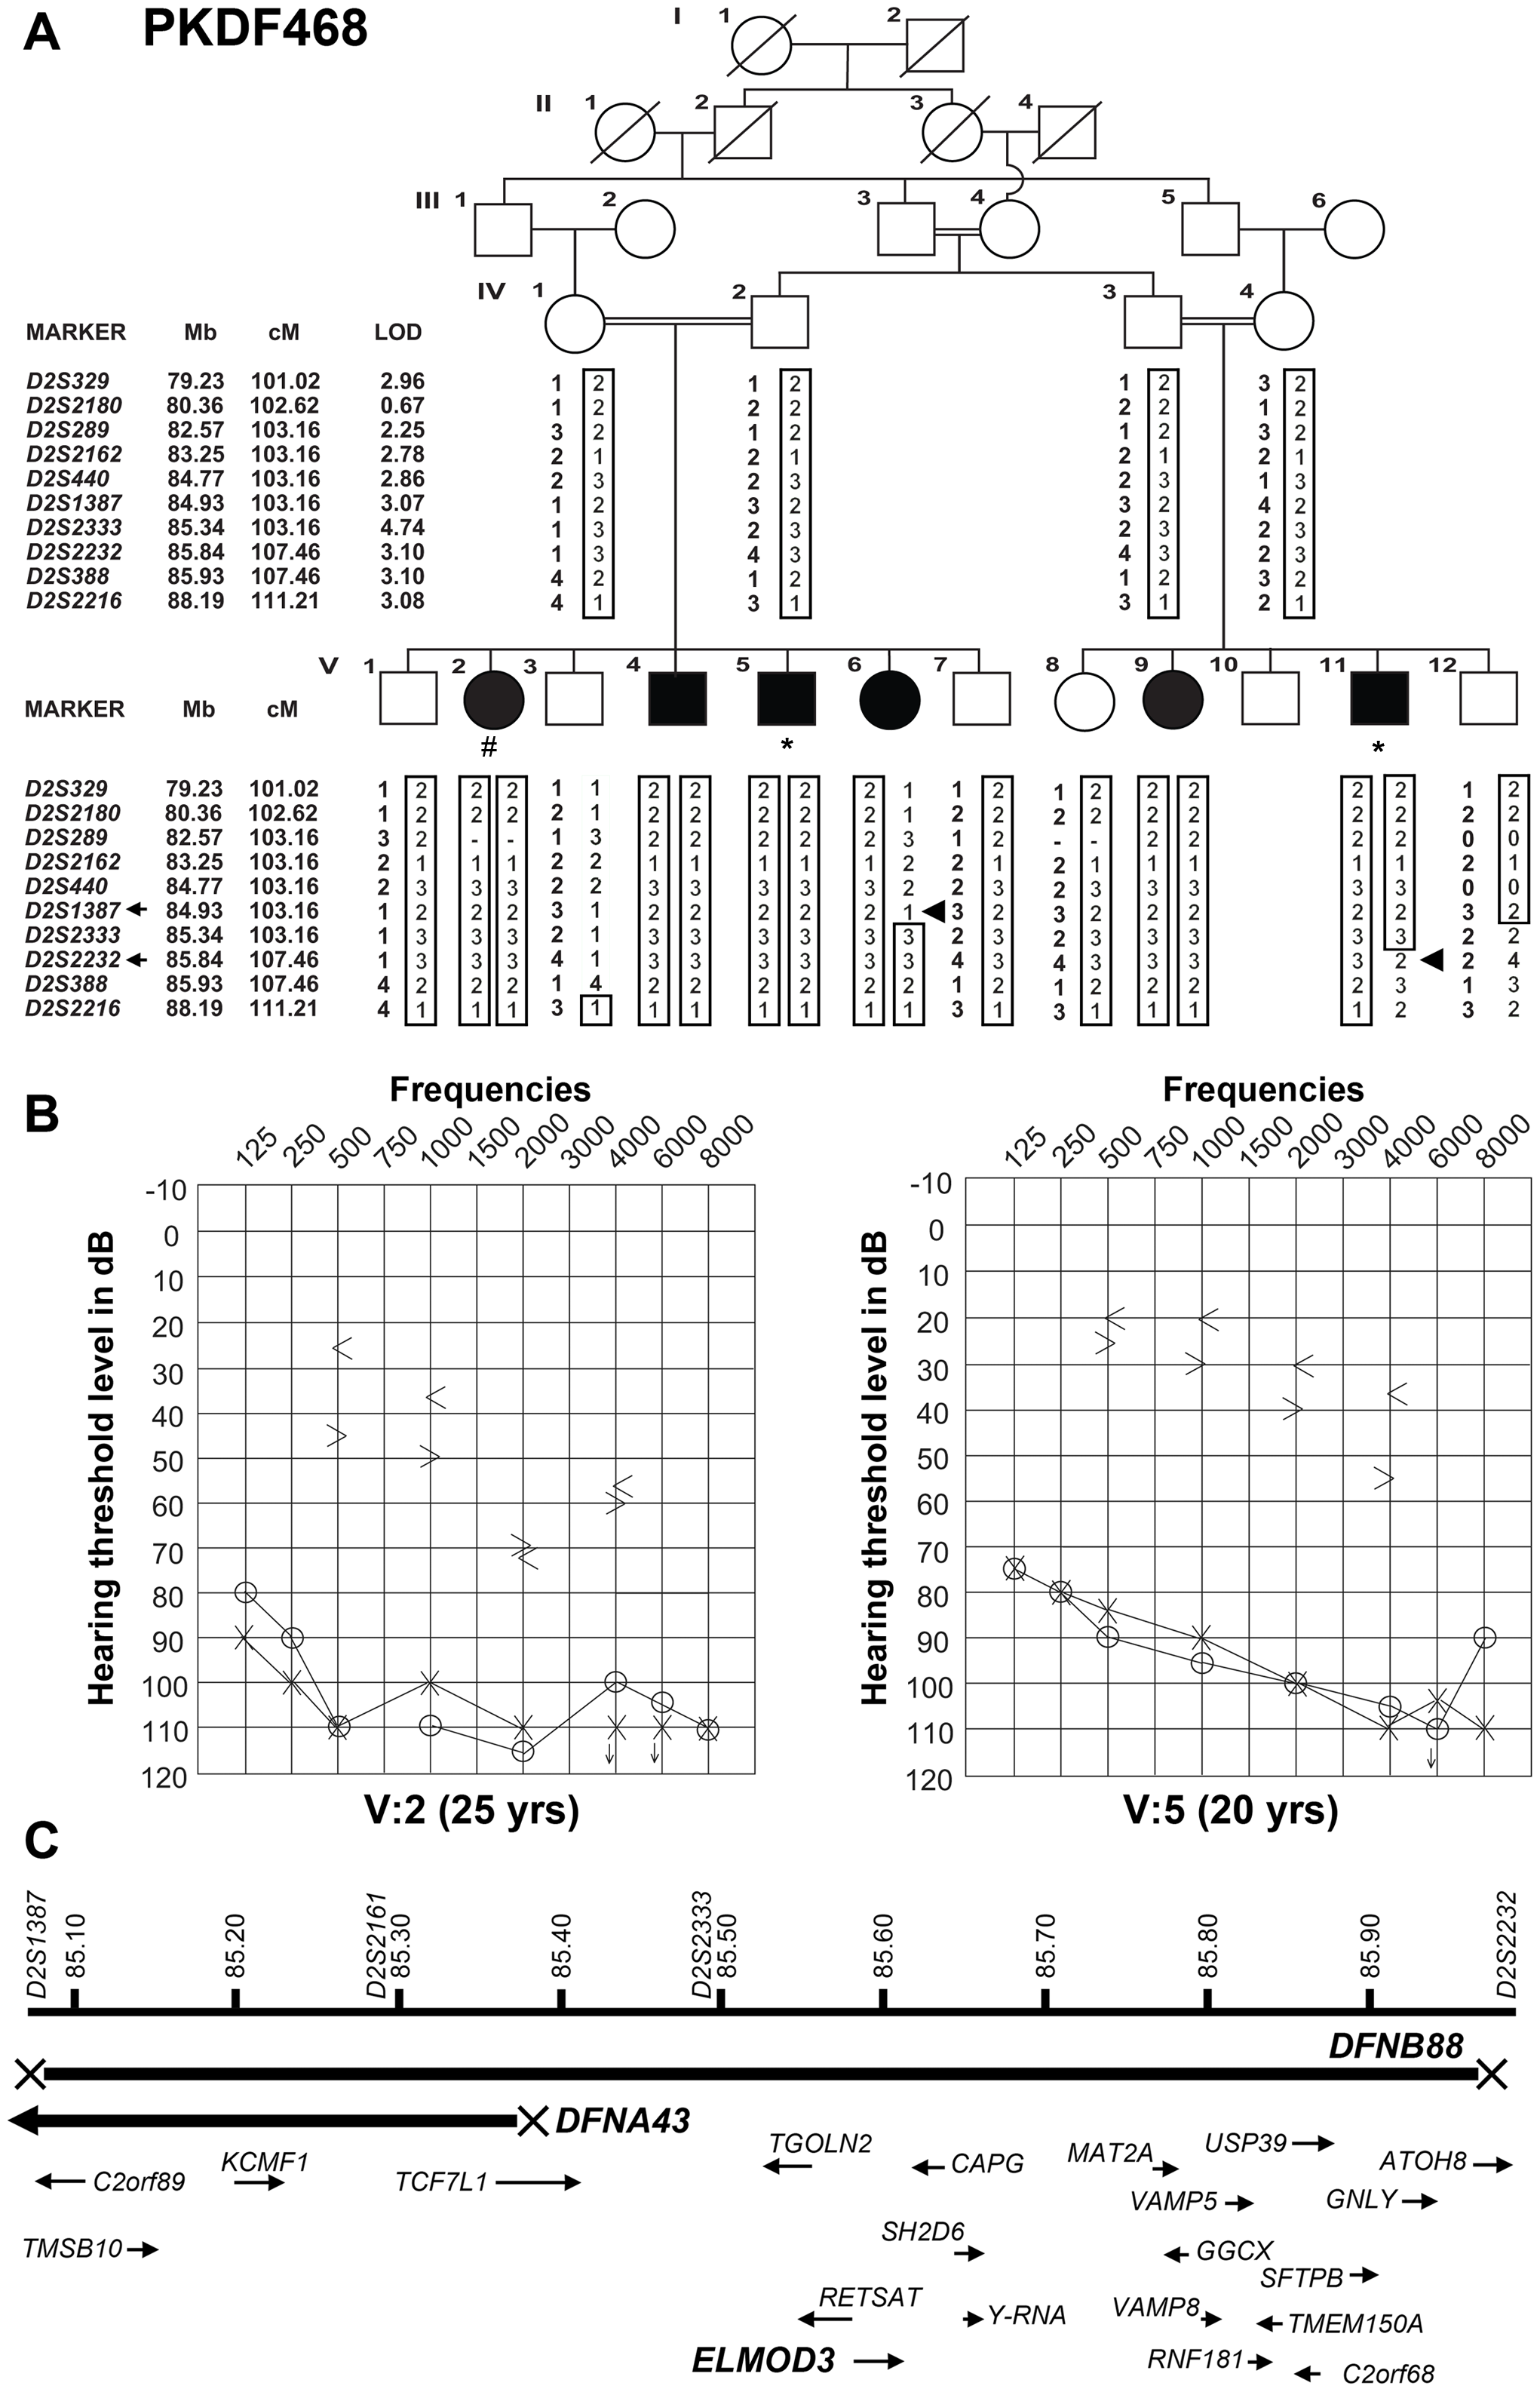 Hearing loss segregating in family PKDF468 is associated with a missense ELMOD3 allele.